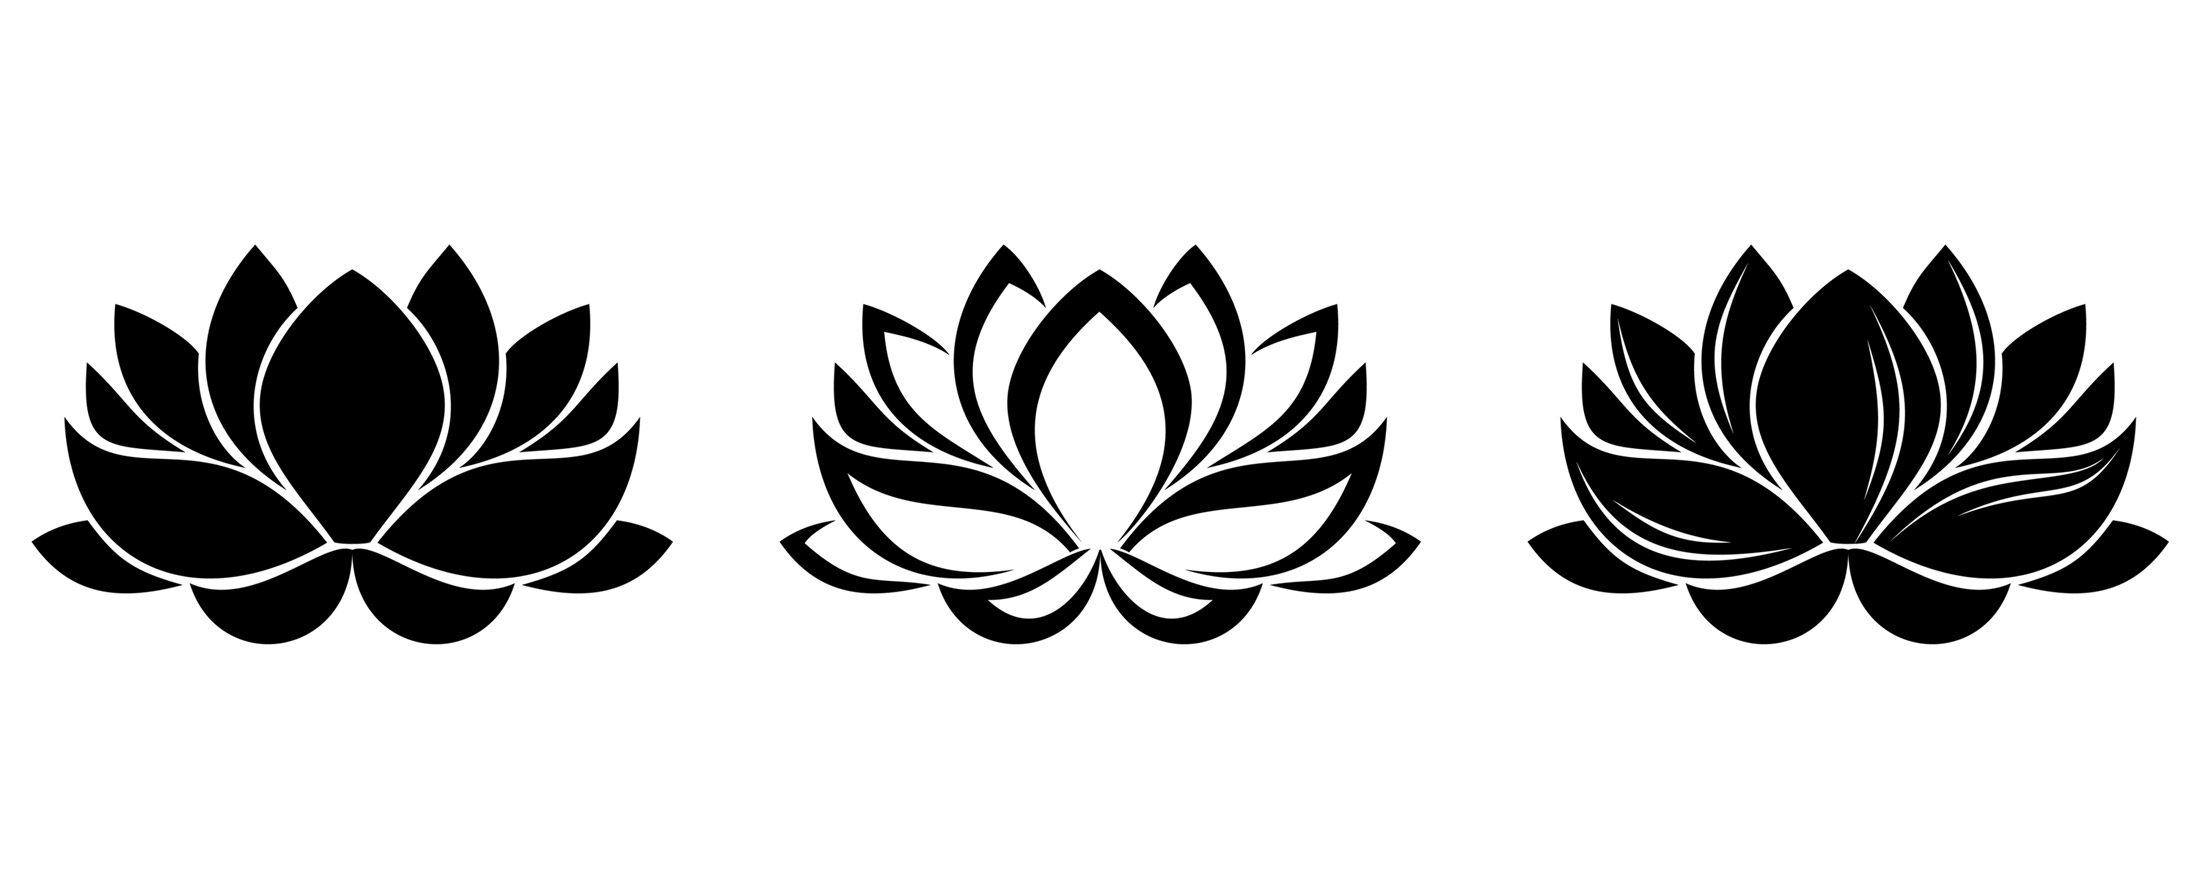 Lotus Flower Vector Free Download At Getdrawings Free For